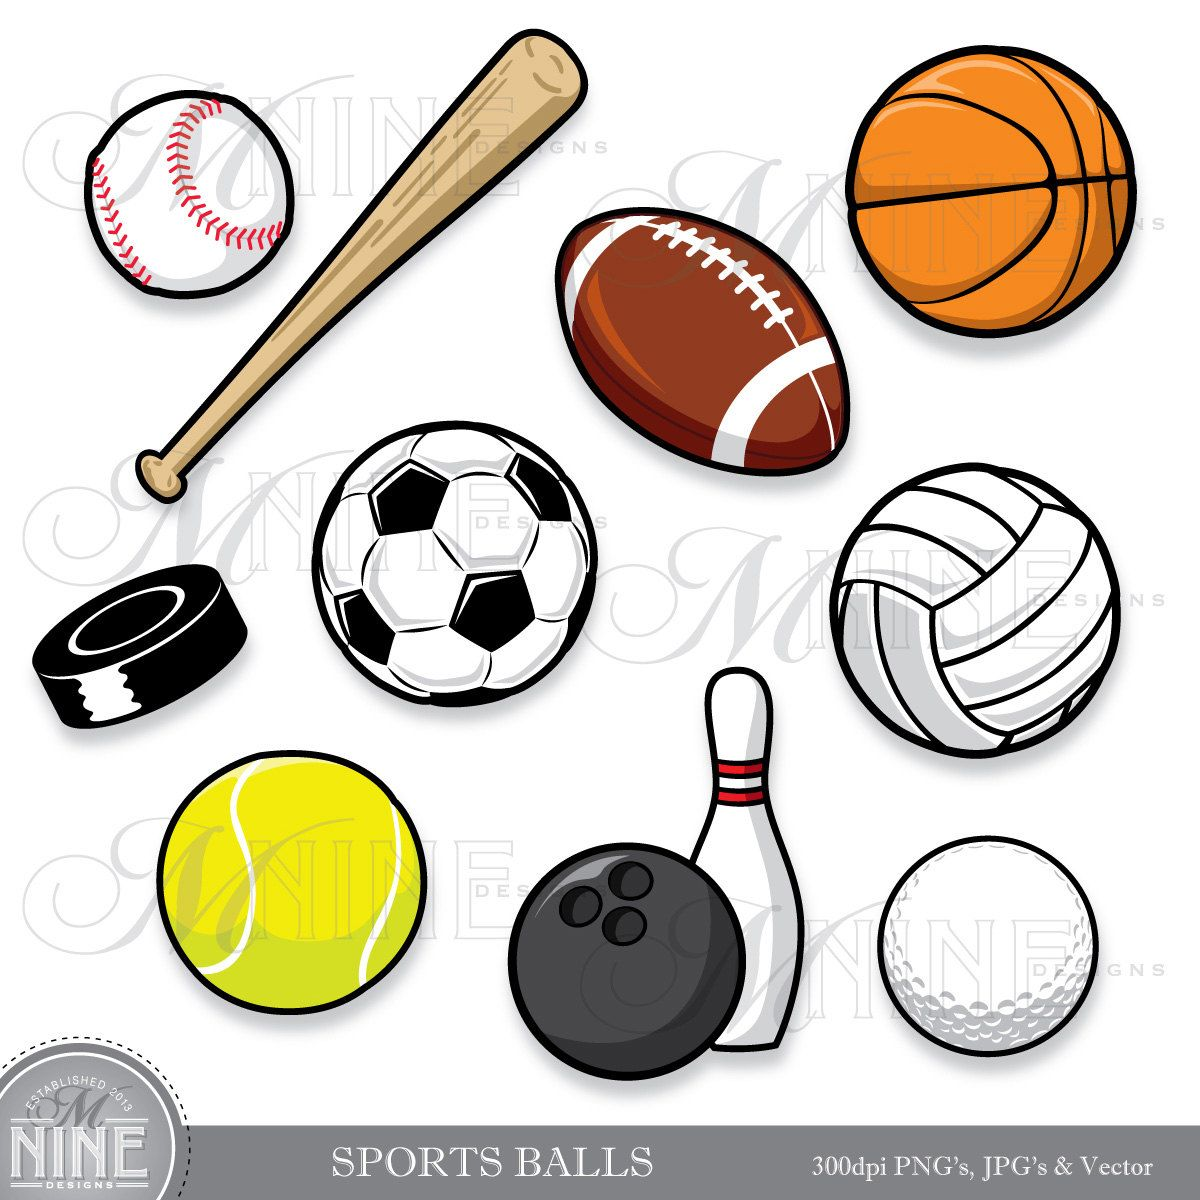 sport ball images Google Search Clip art